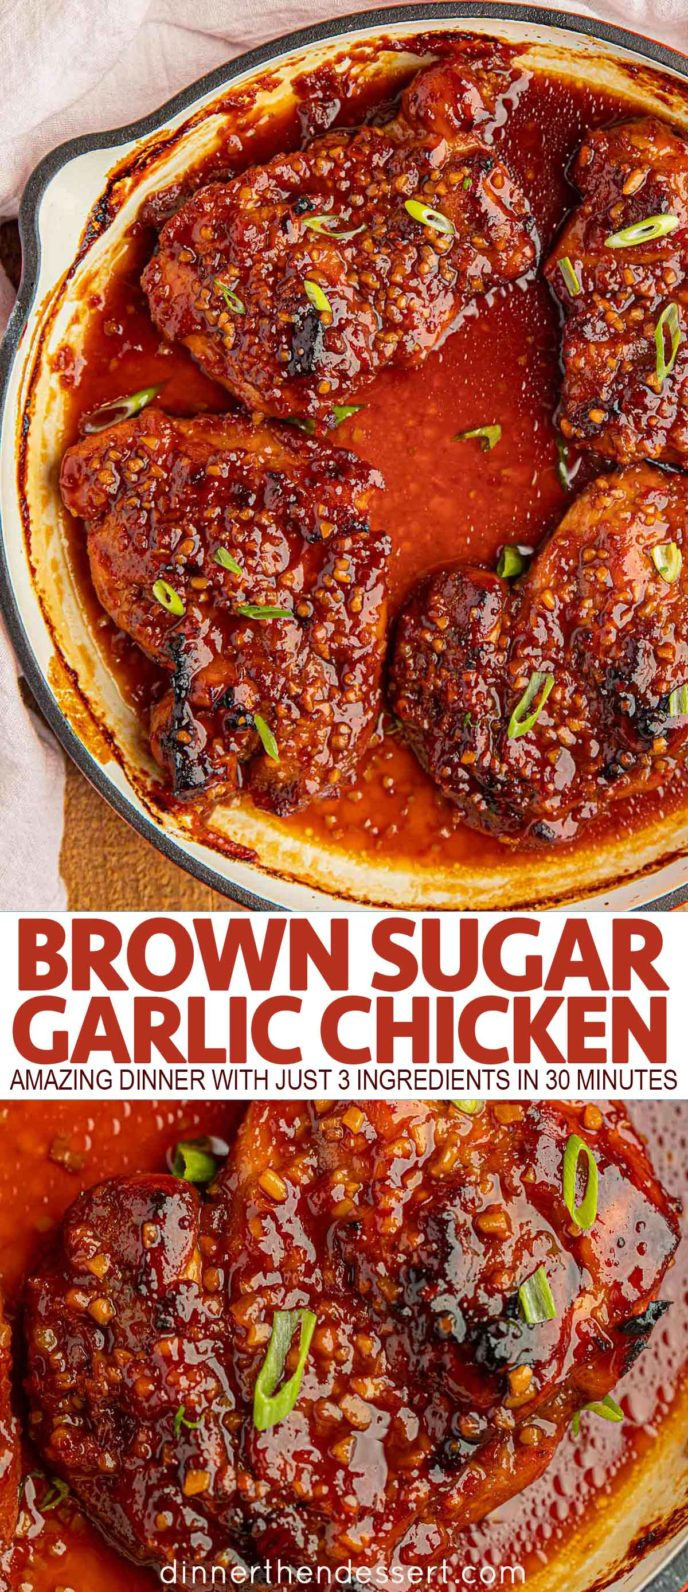 Brown Sugar Garlic Chicken in a pan